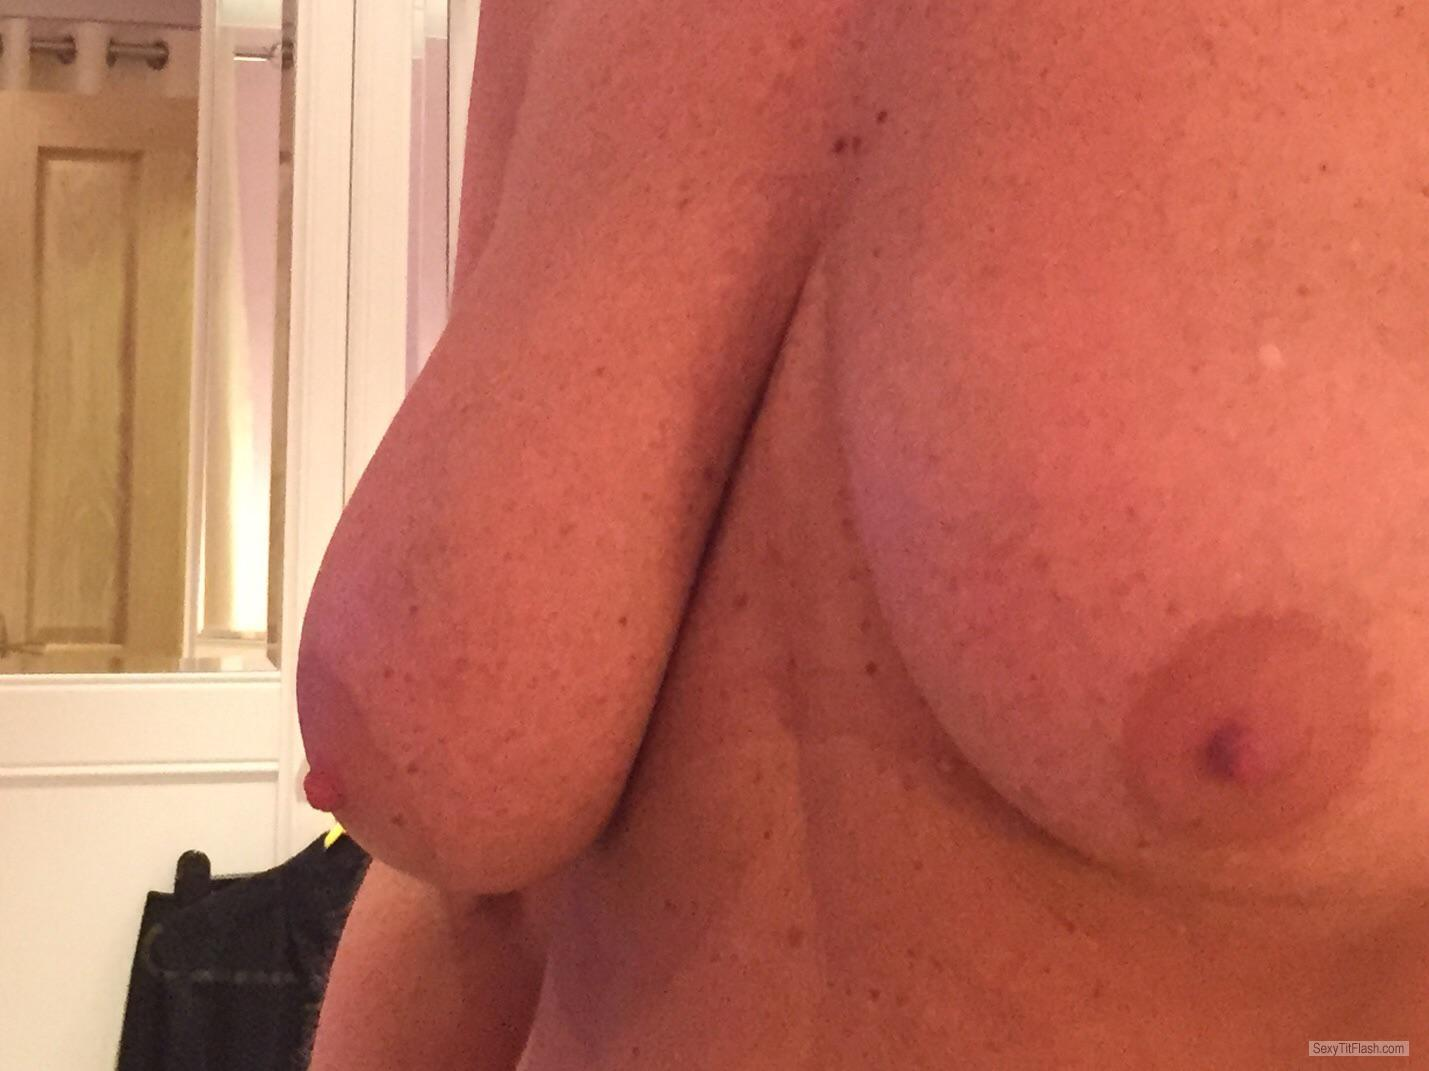 My Big Tits Selfie by Please Enjoy